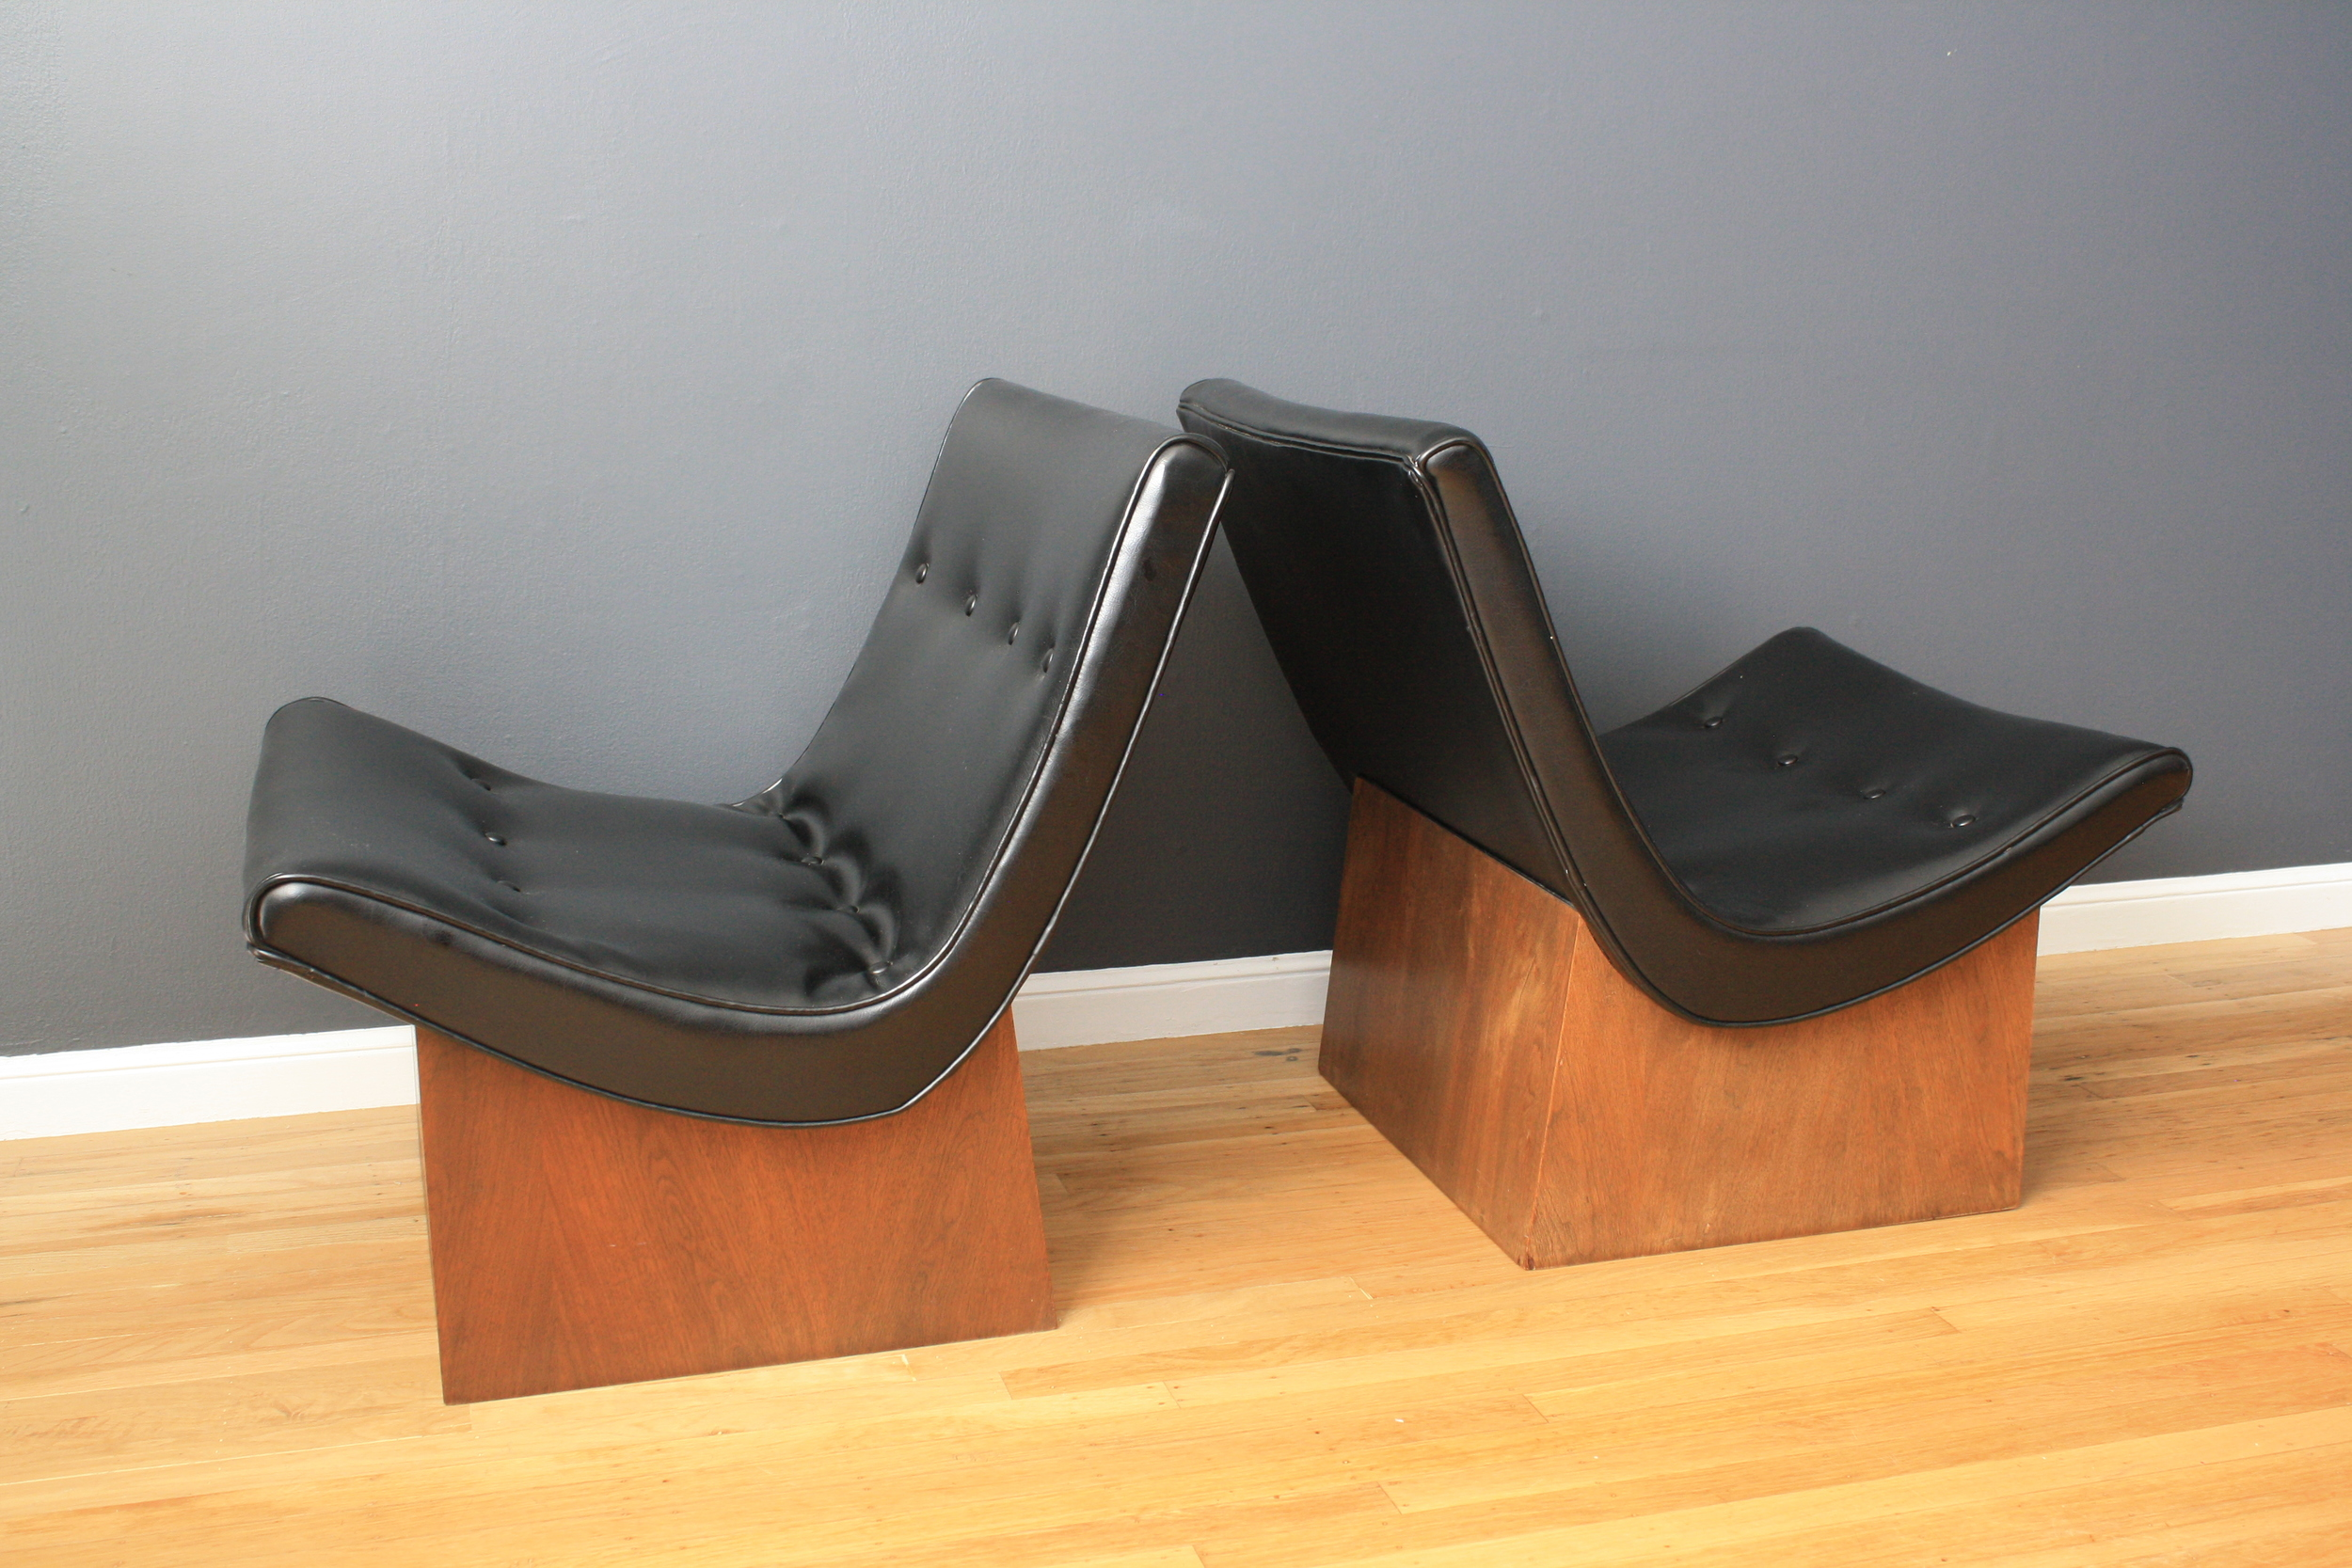 Pair of Vintage Milo Baughman Scoop Chairs